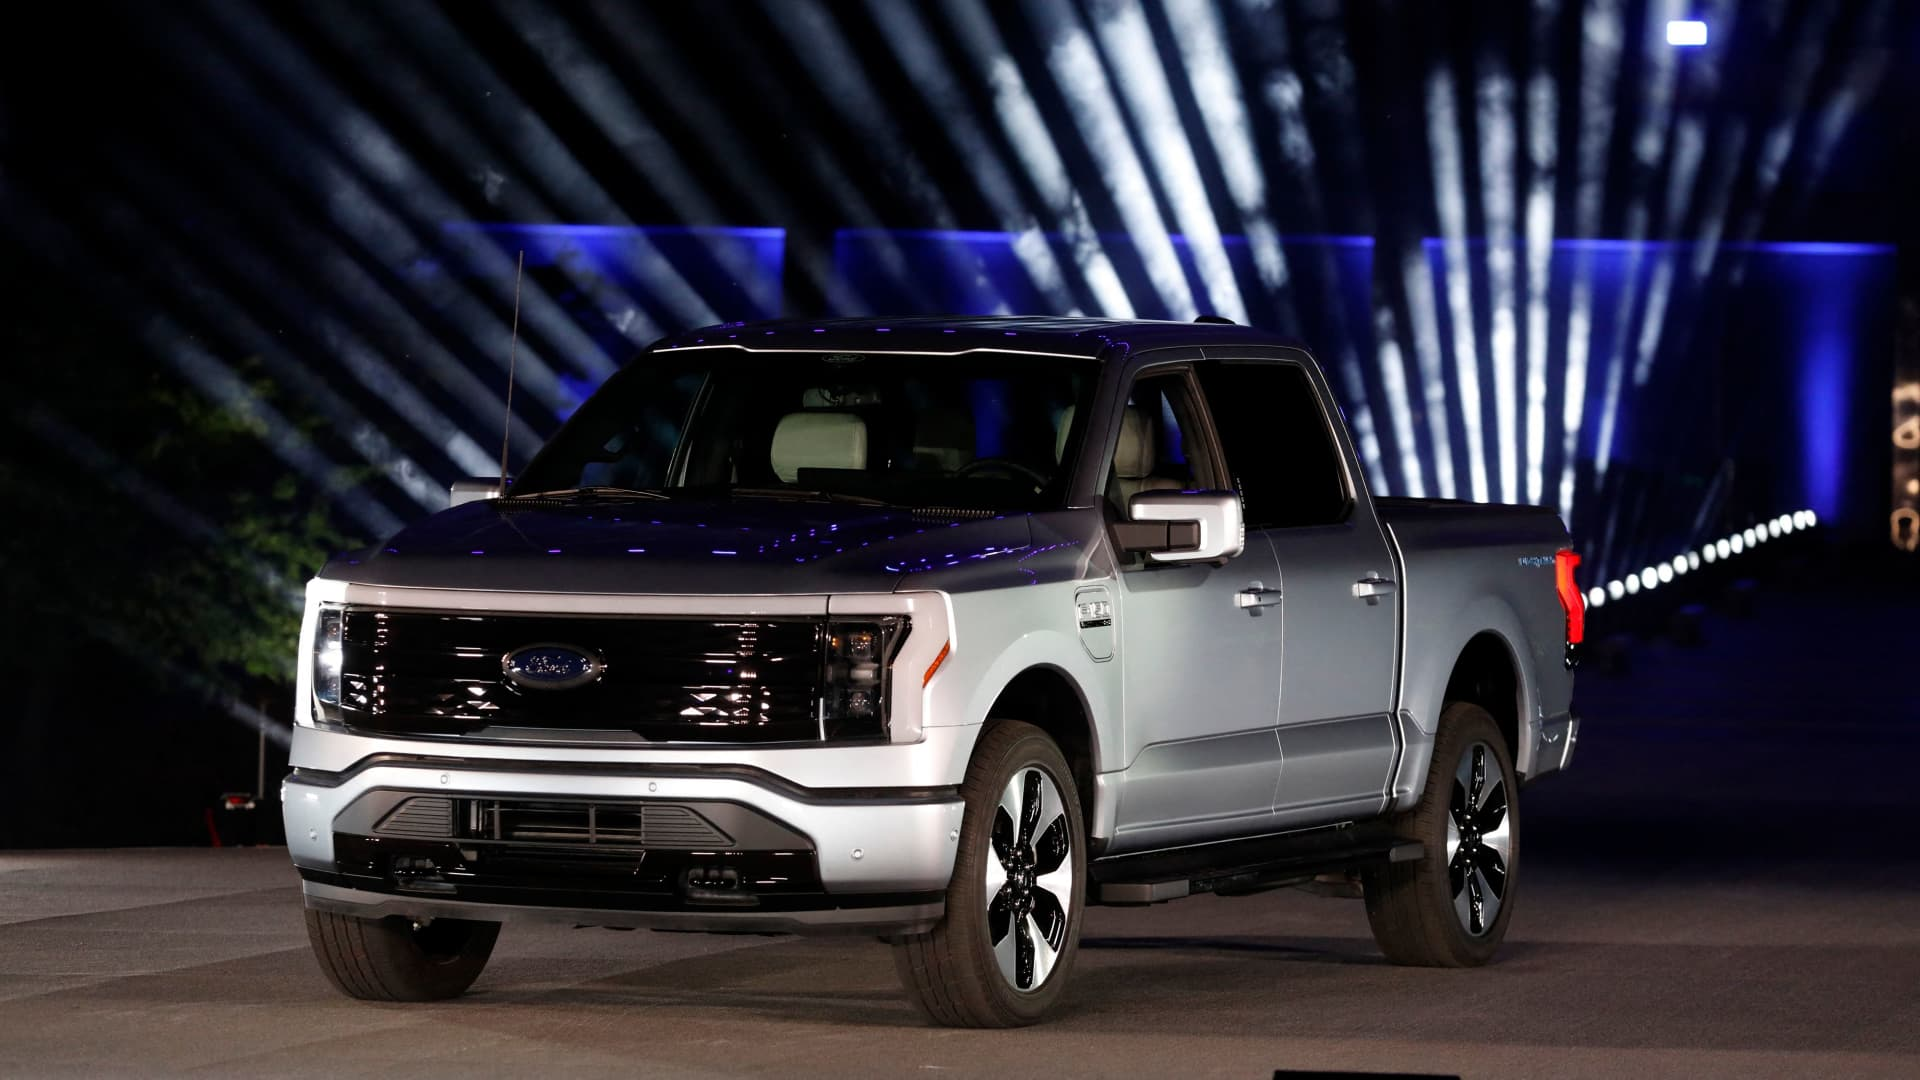 Ford Motor Company unveils their new electric F-150 Lightning outside of their headquarters in Dearborn, Michigan on May 19, 2021.